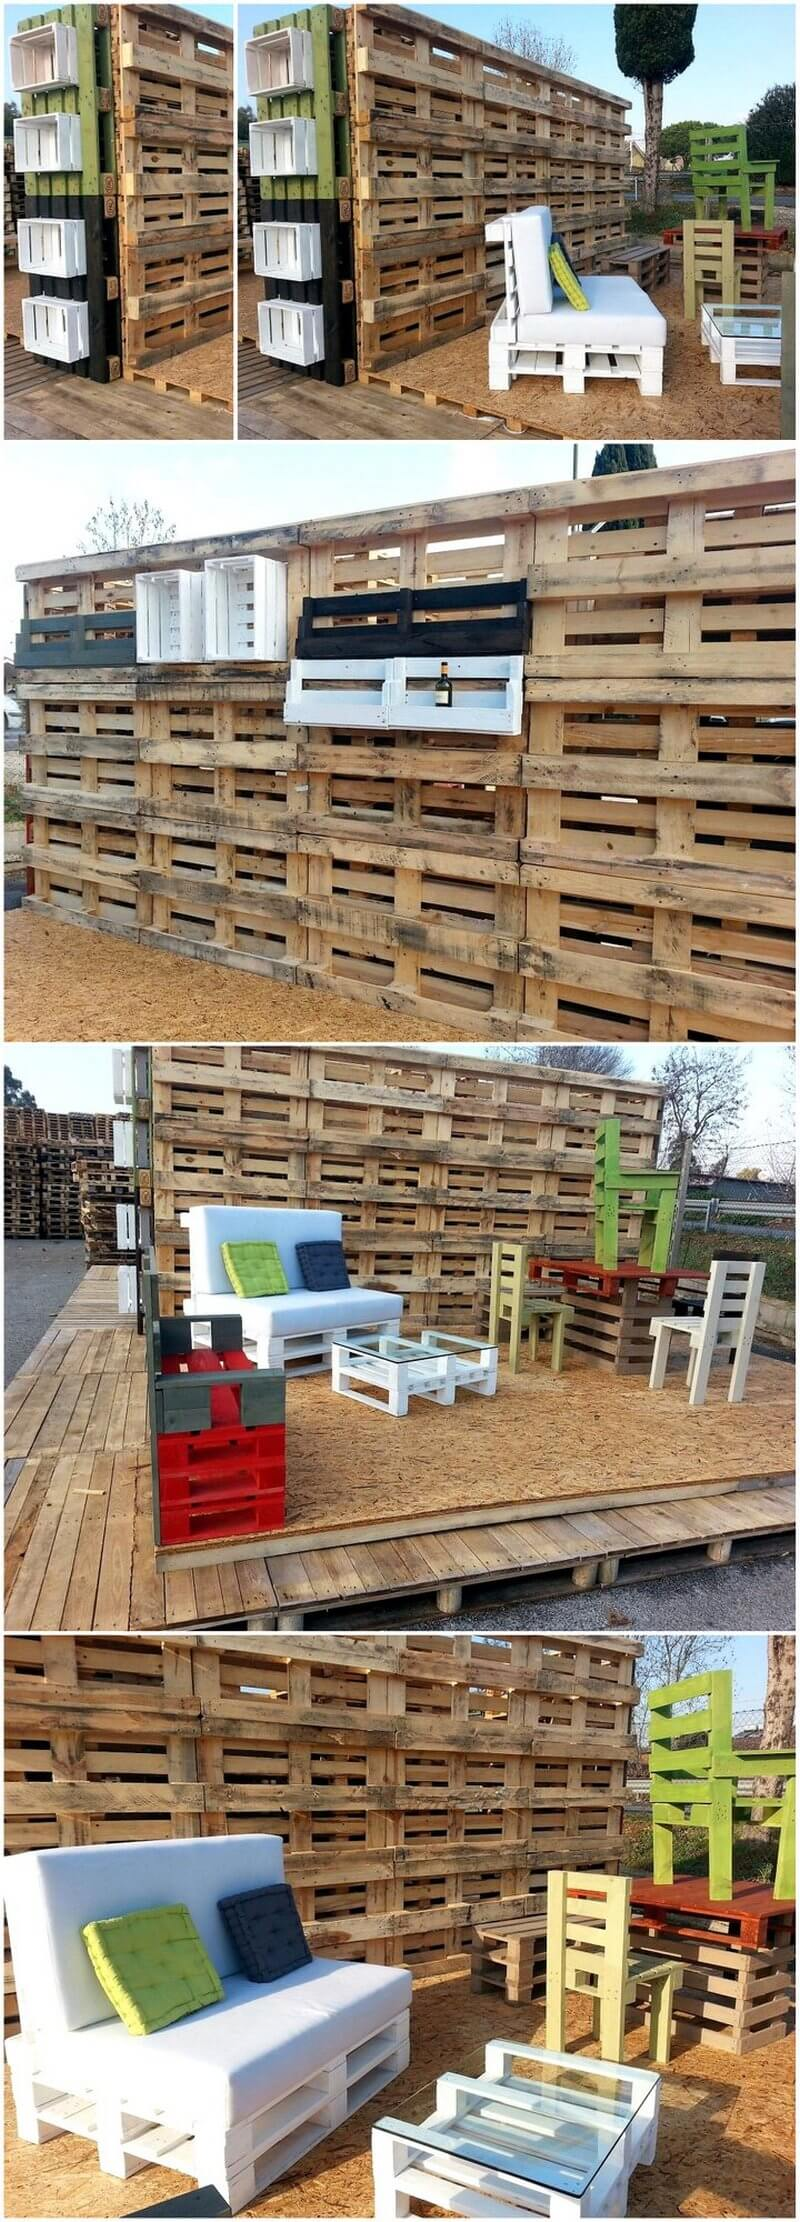 recycled pallet creations